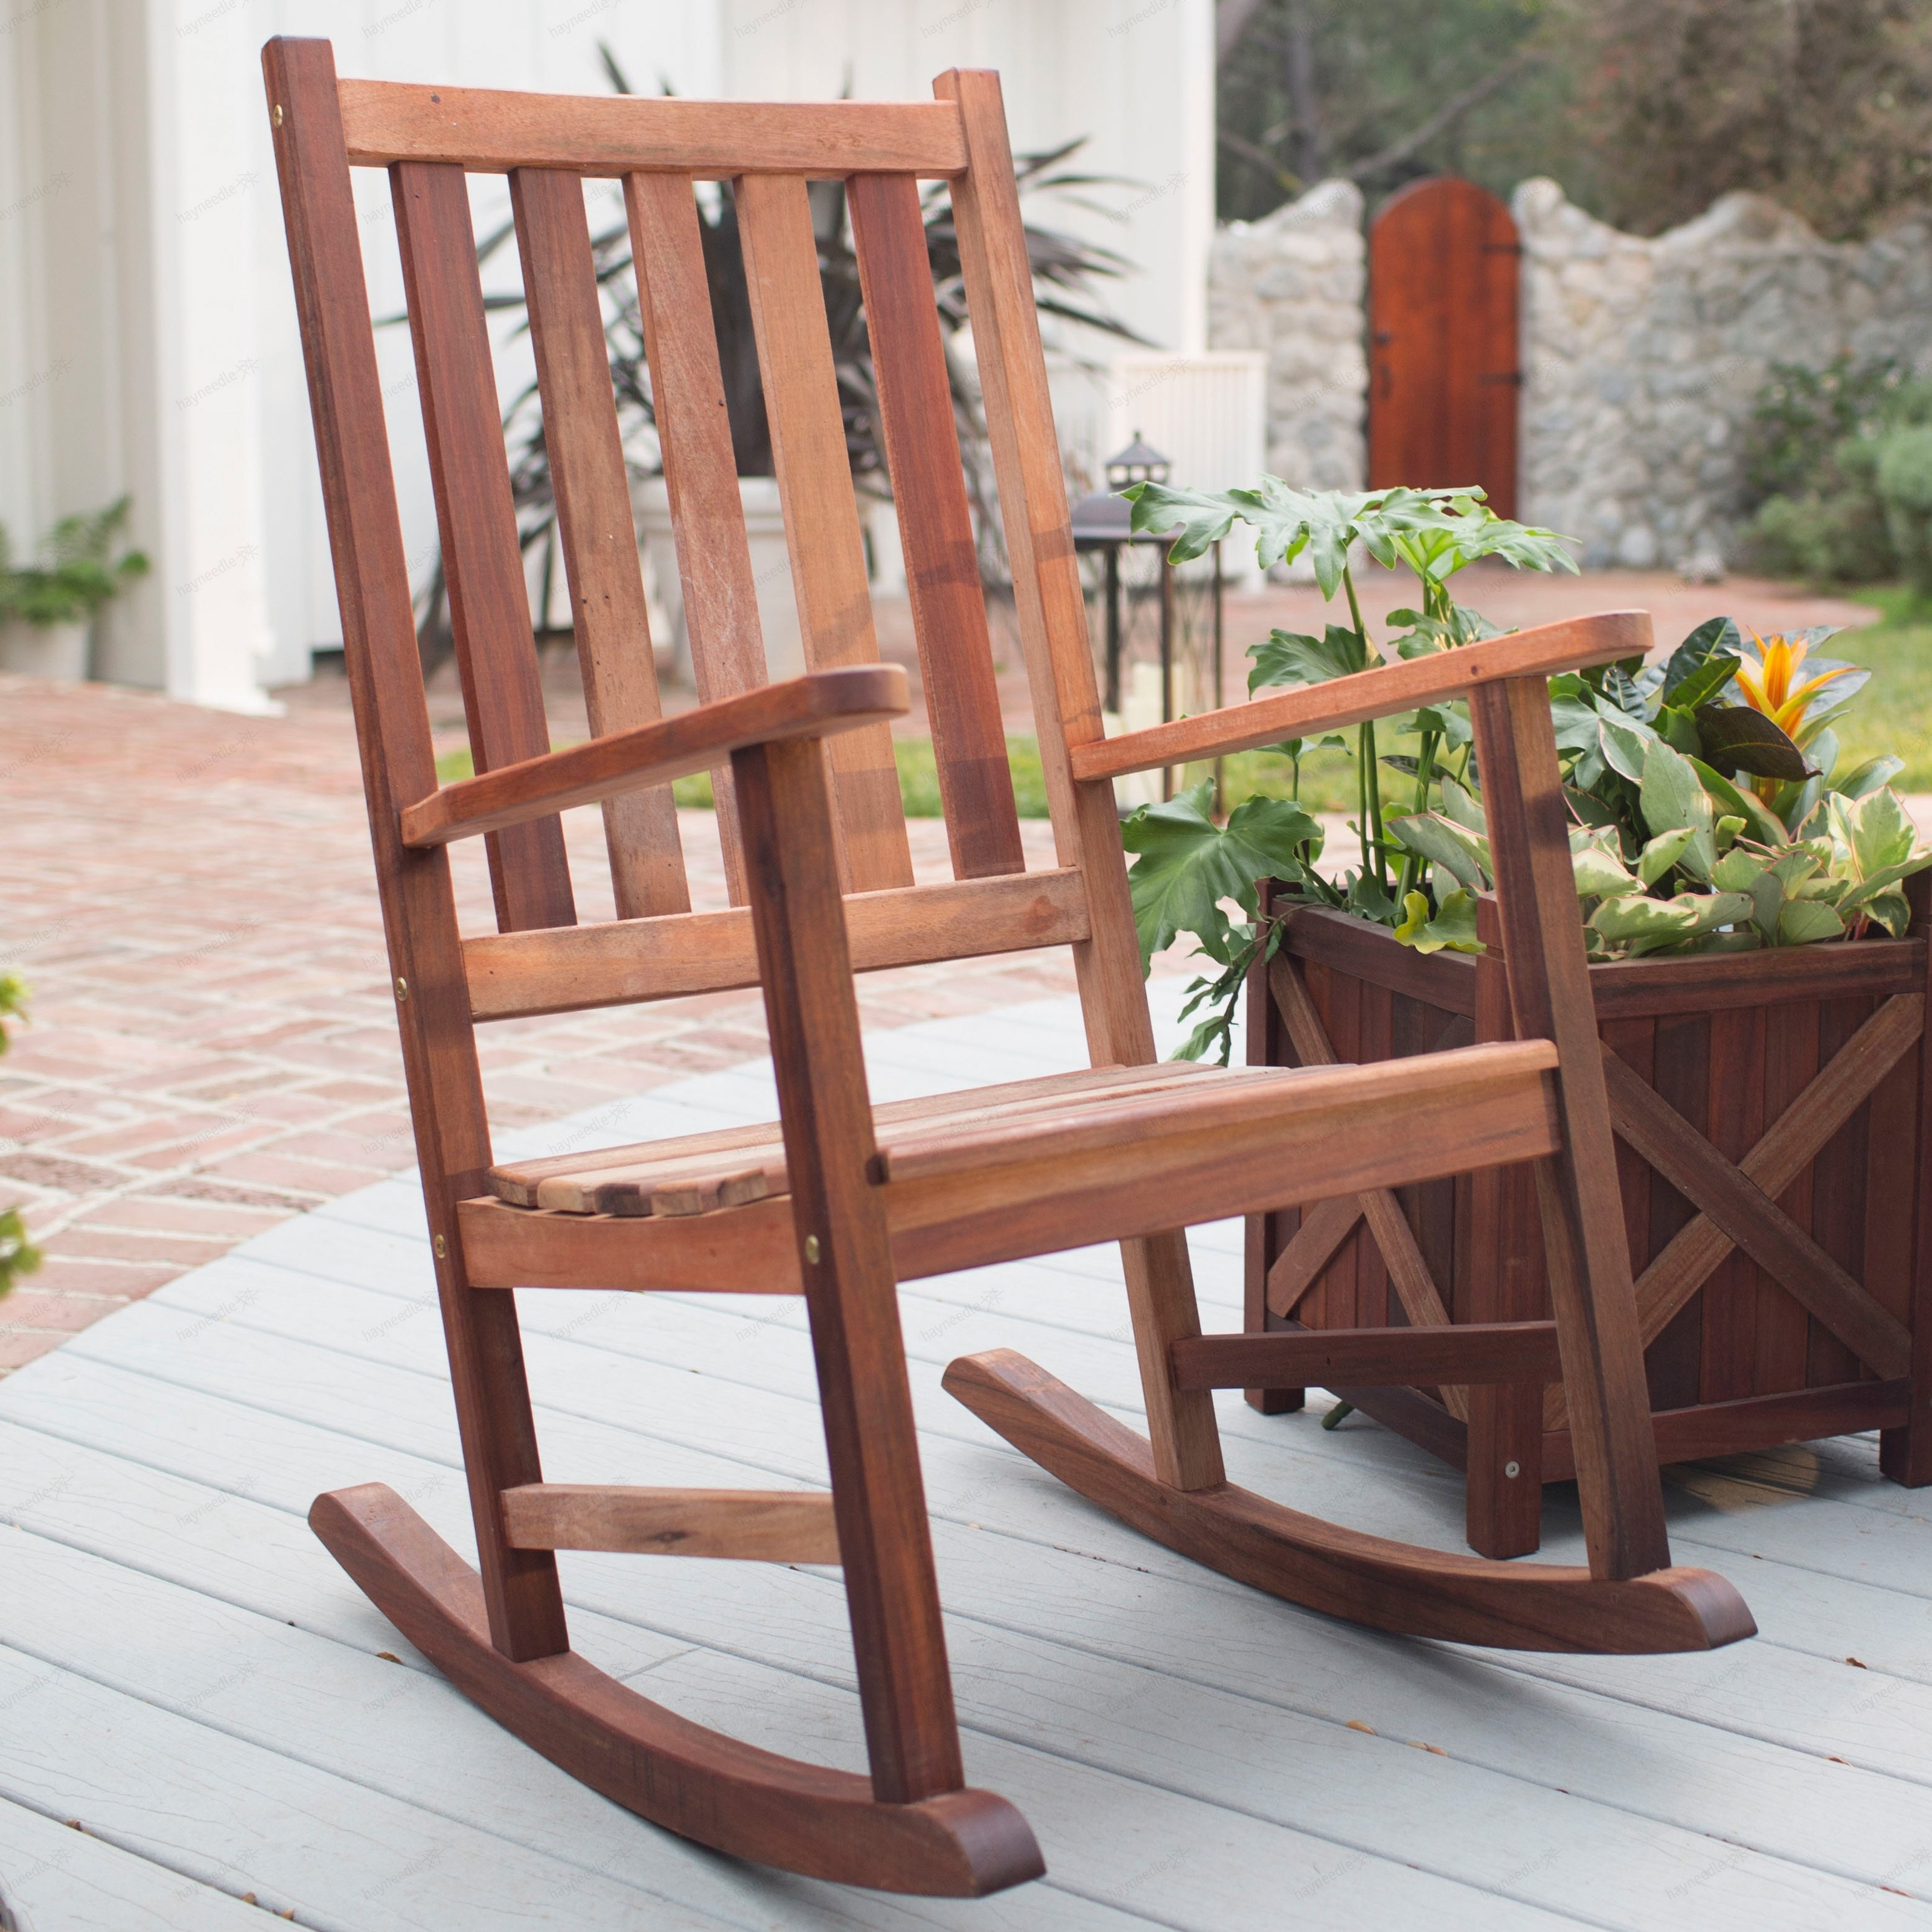 Comfy Outdoor Rocking Chair Canada F41X In Stylish Decorating Home Within Rocking Chairs For Outdoors (#3 of 15)